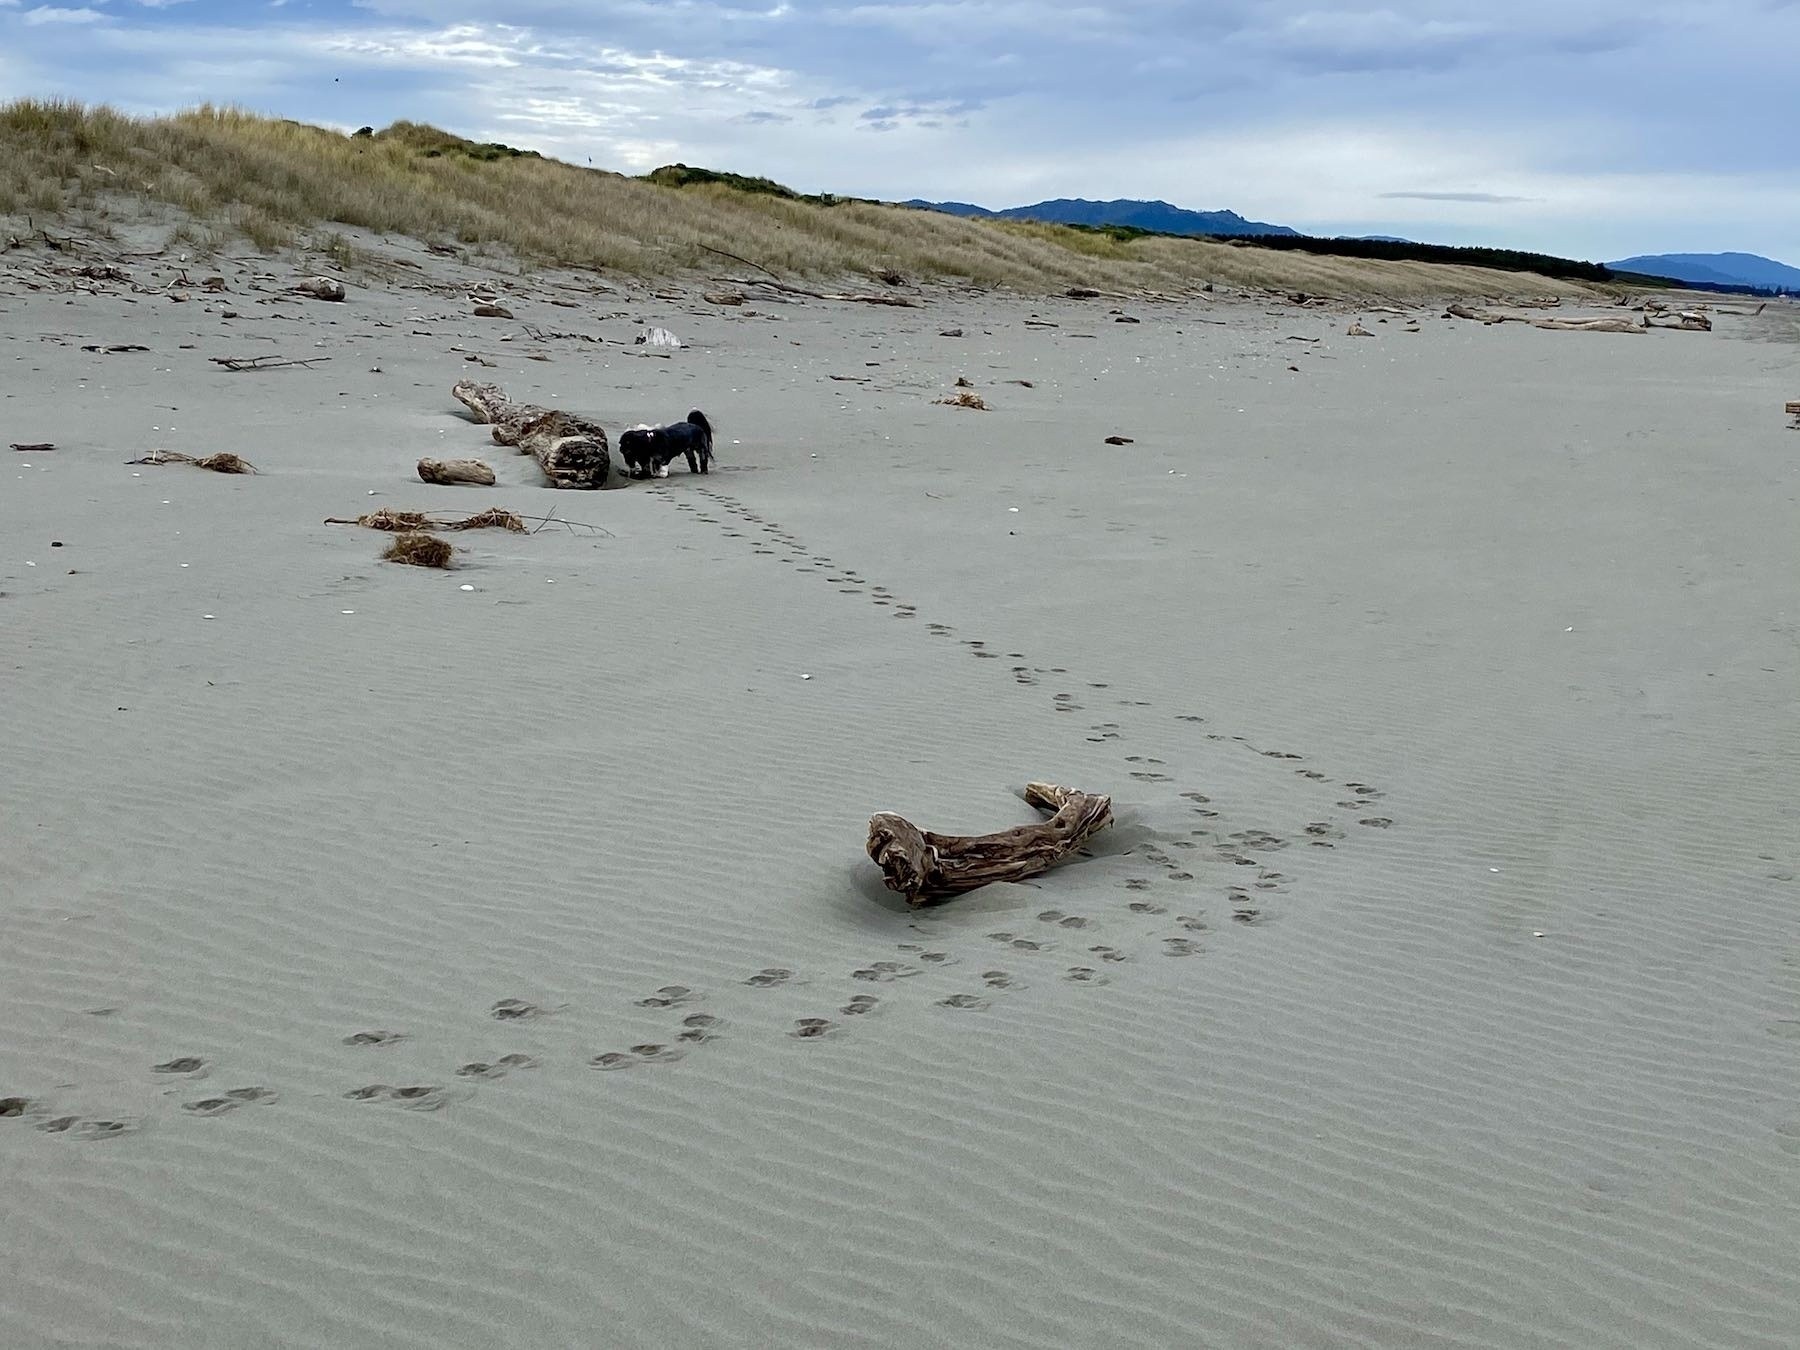 Tracks in the sand, made by two small dogs, veer 90 degrees to the left by one piece of driftwood. The dogs are now at another piece.